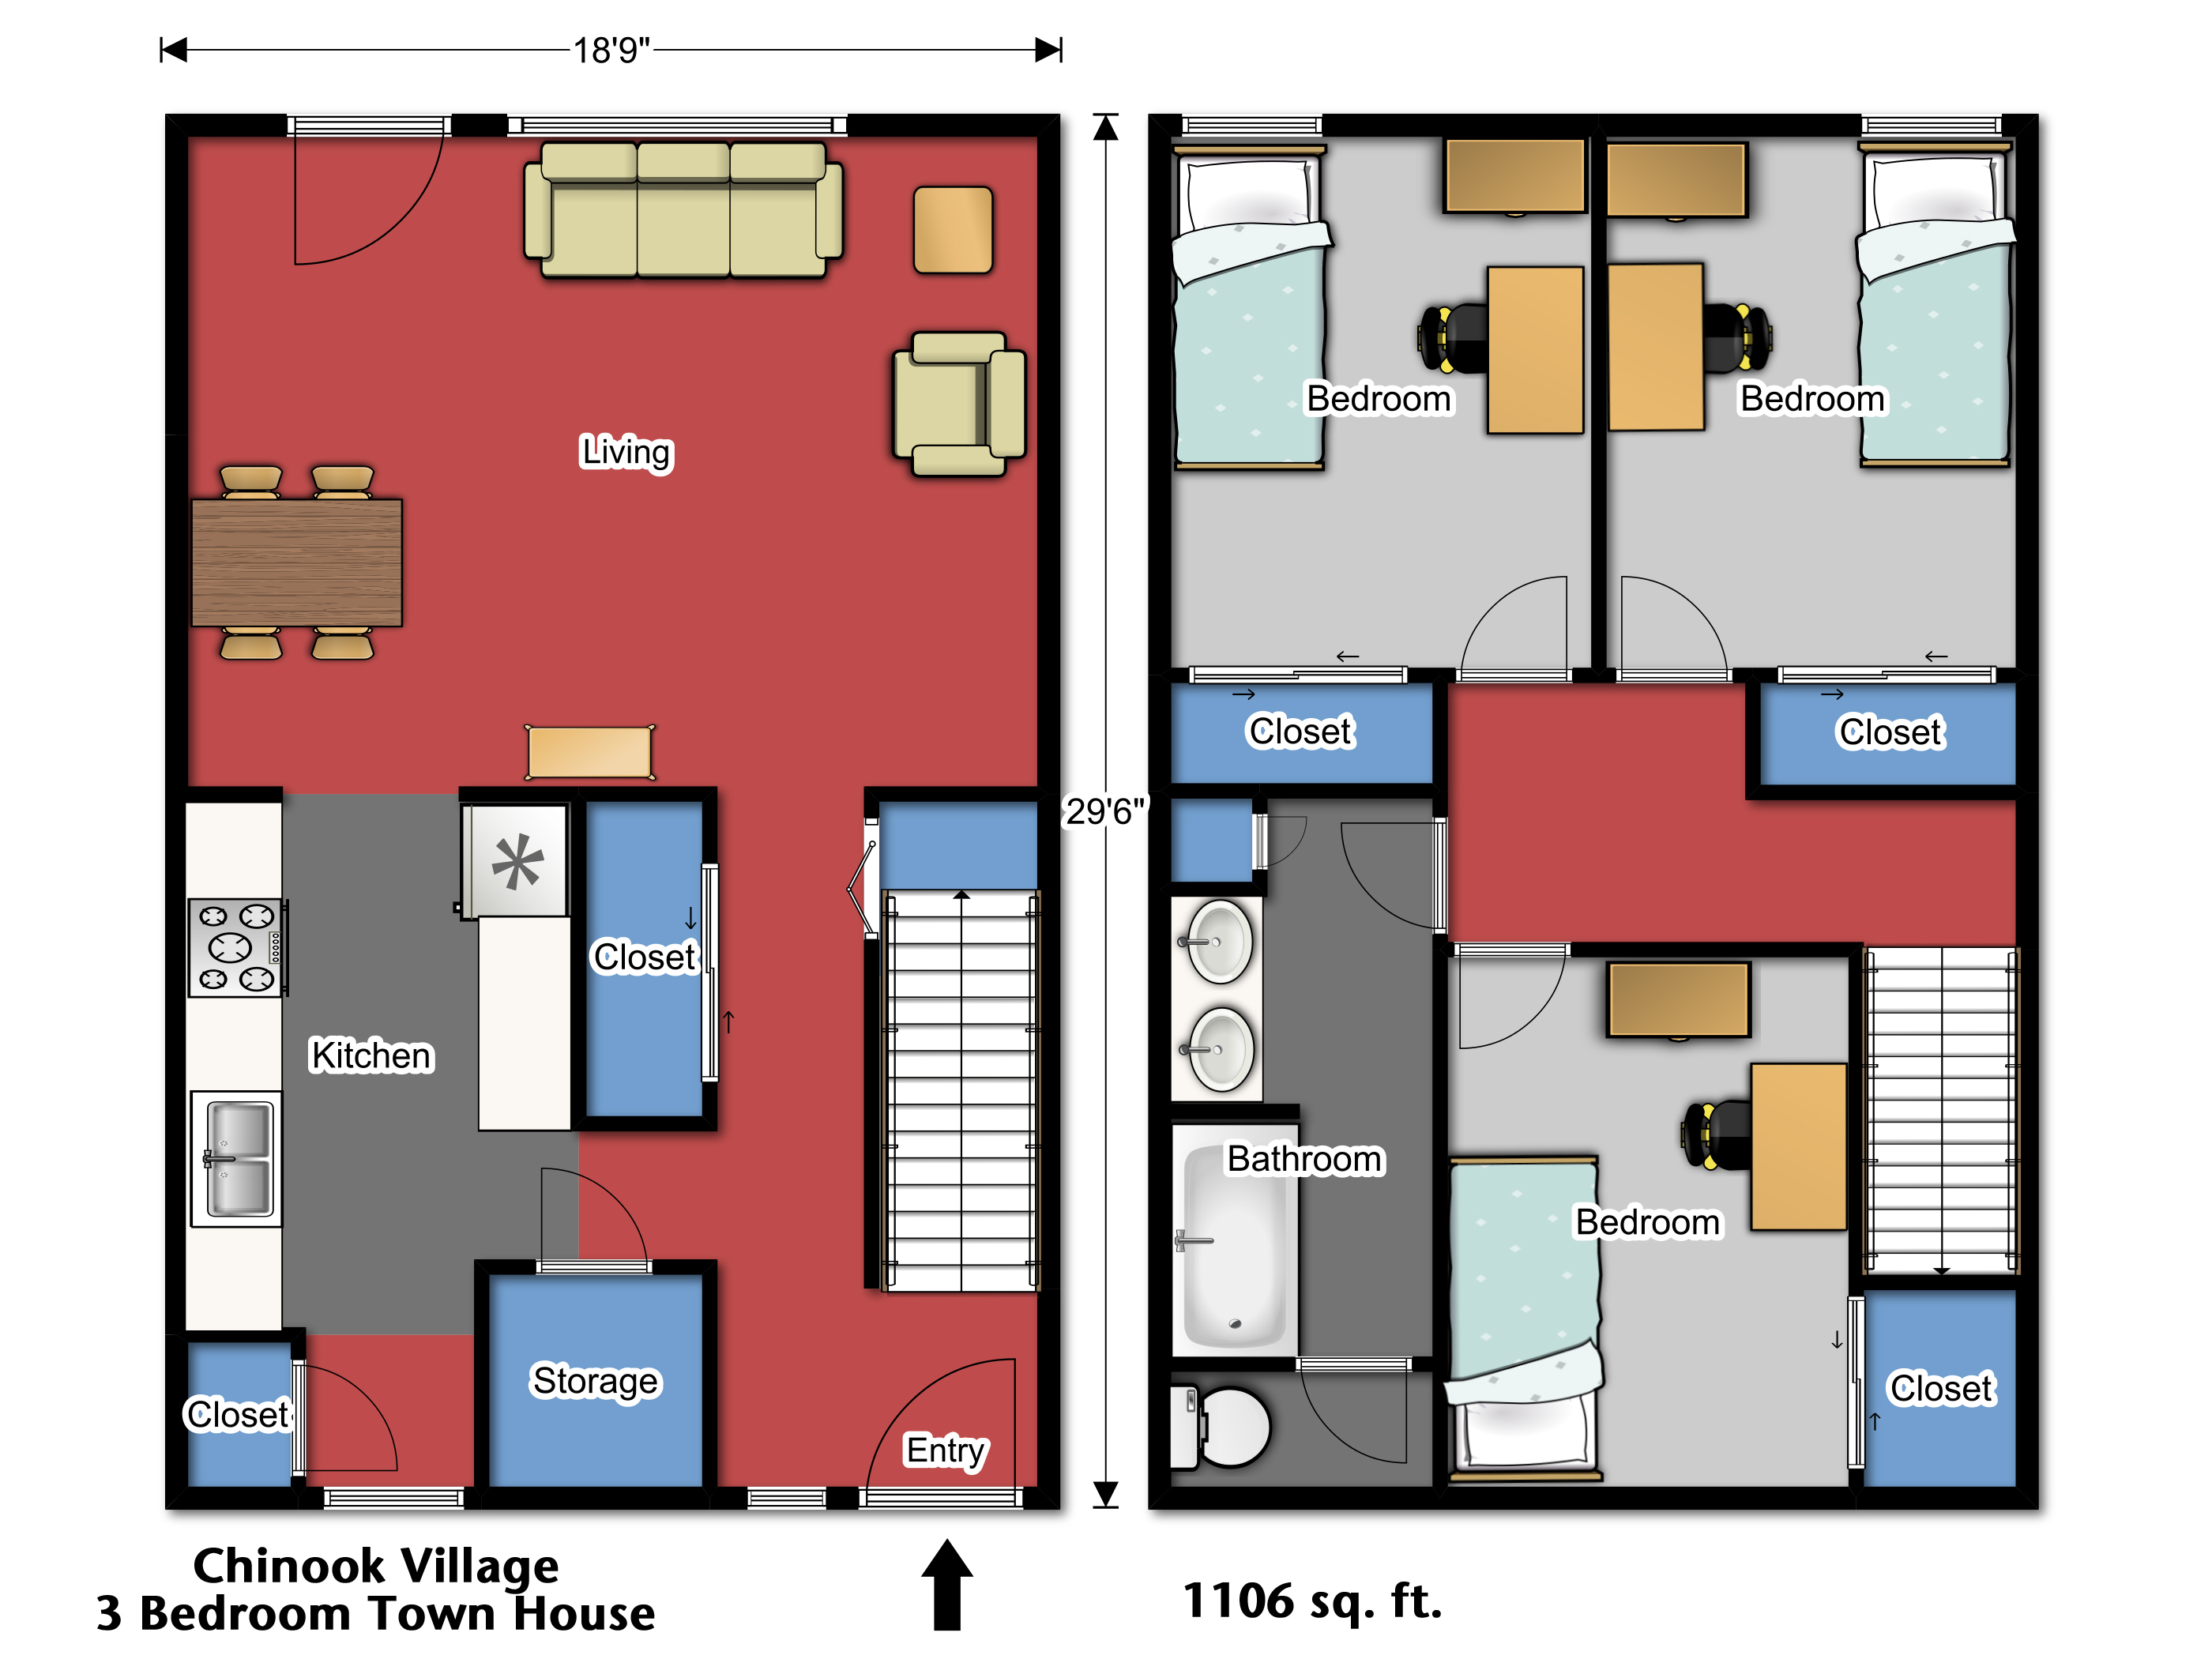 Chinook village at wsu for Townhouse layout 3 bedrooms